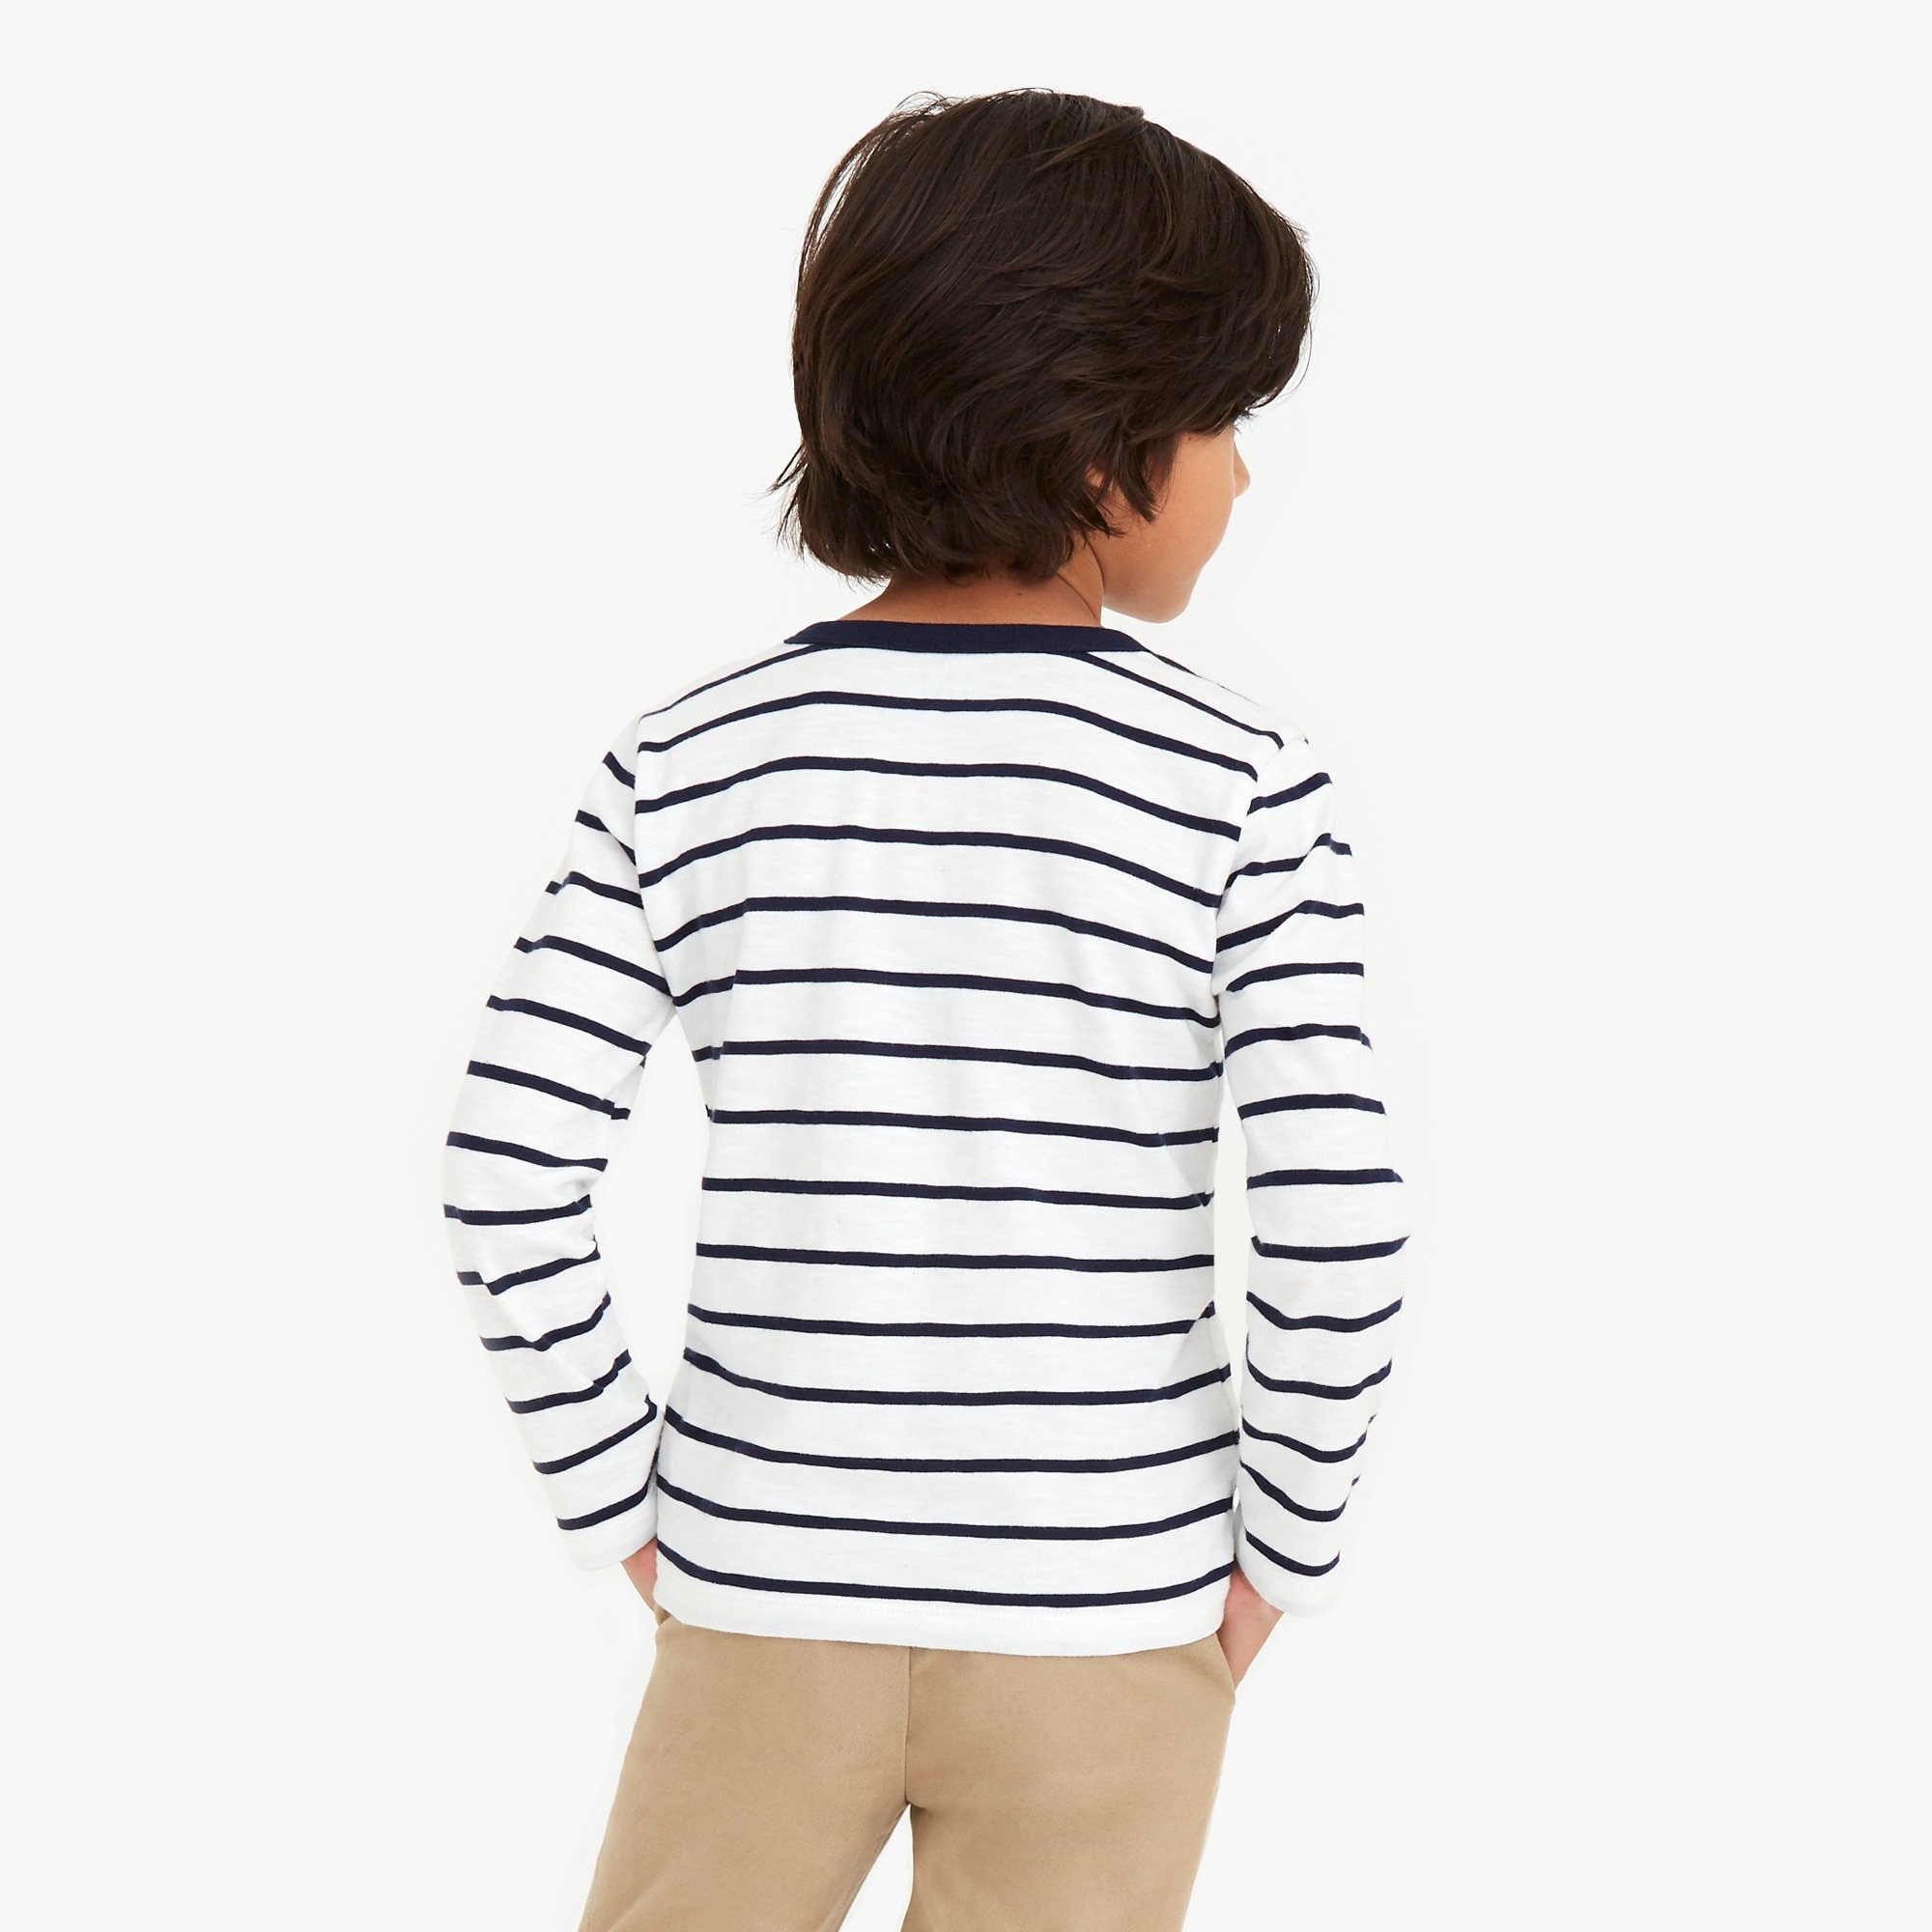 Image 3 for Boys' long-sleeve striped T-shirt